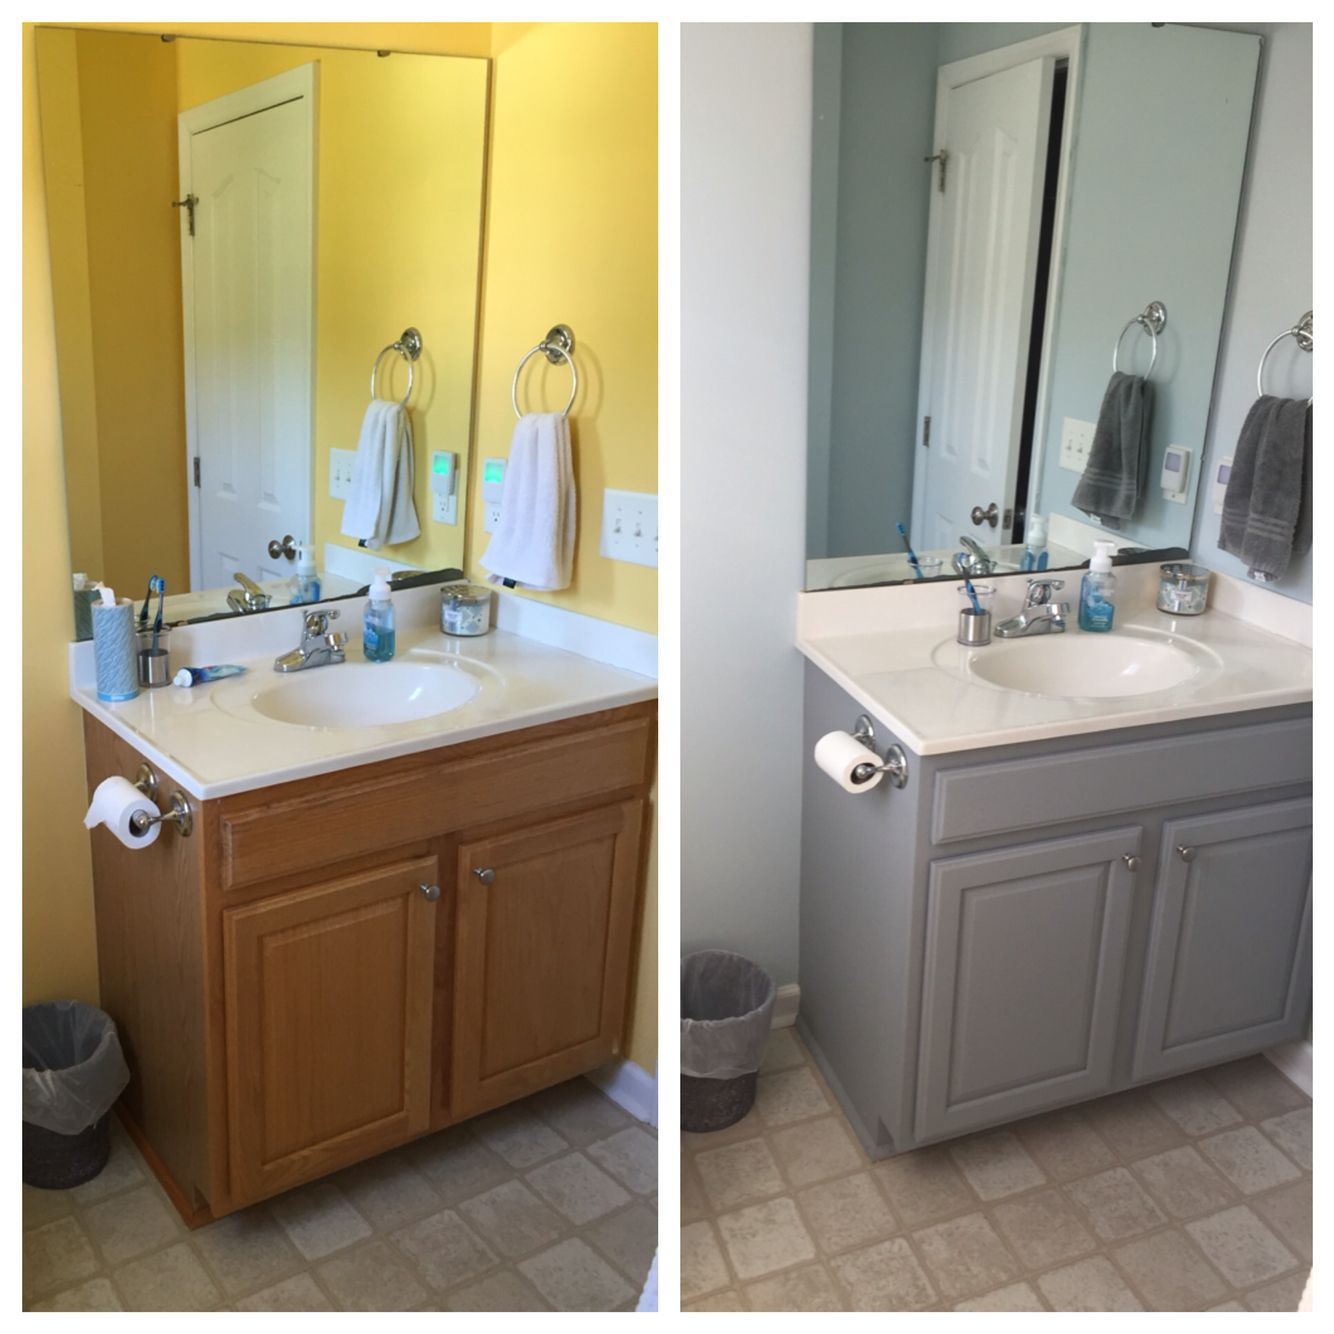 Before And After Bathroom Cabinet Valspar Chalky Paint In Woolen Stockings Walls Sherwin Painted Vanity Bathroom Trendy Bathroom Painting Bathroom Cabinets